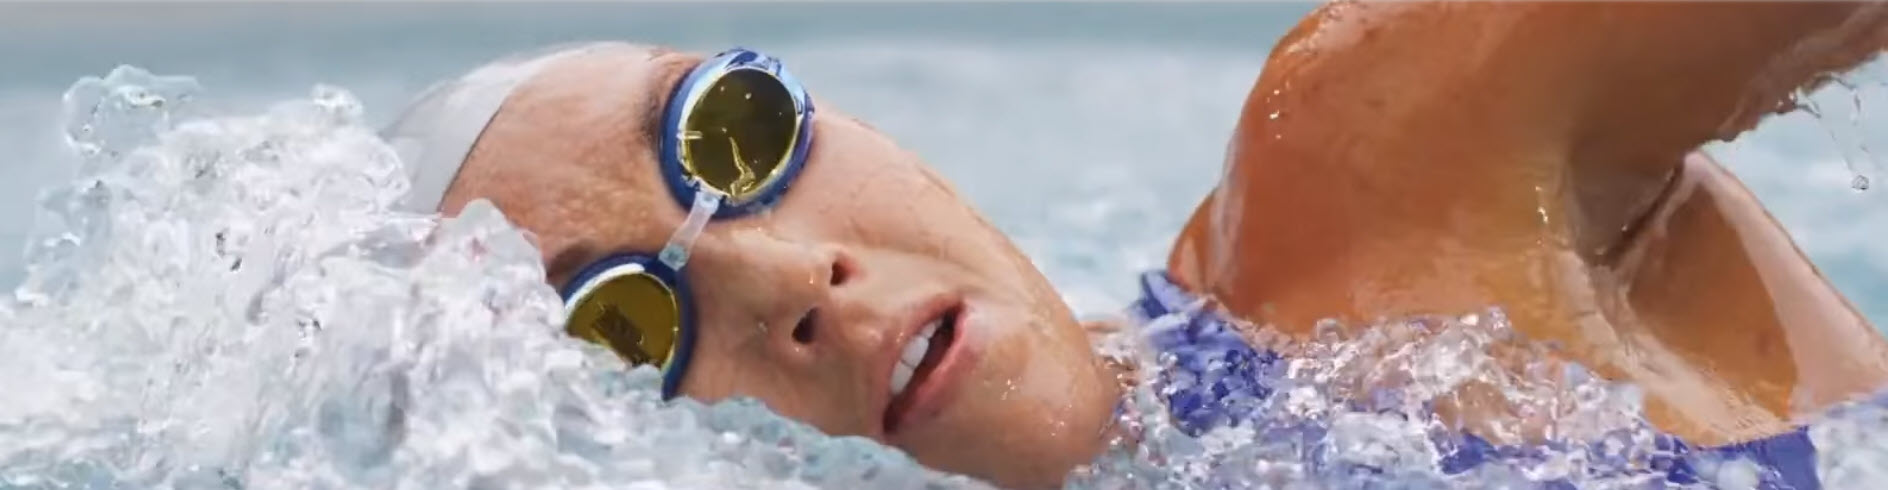 The Lap Pool and Arthritis, 3 Ways to Feel Better Fast, Swim Spas MN